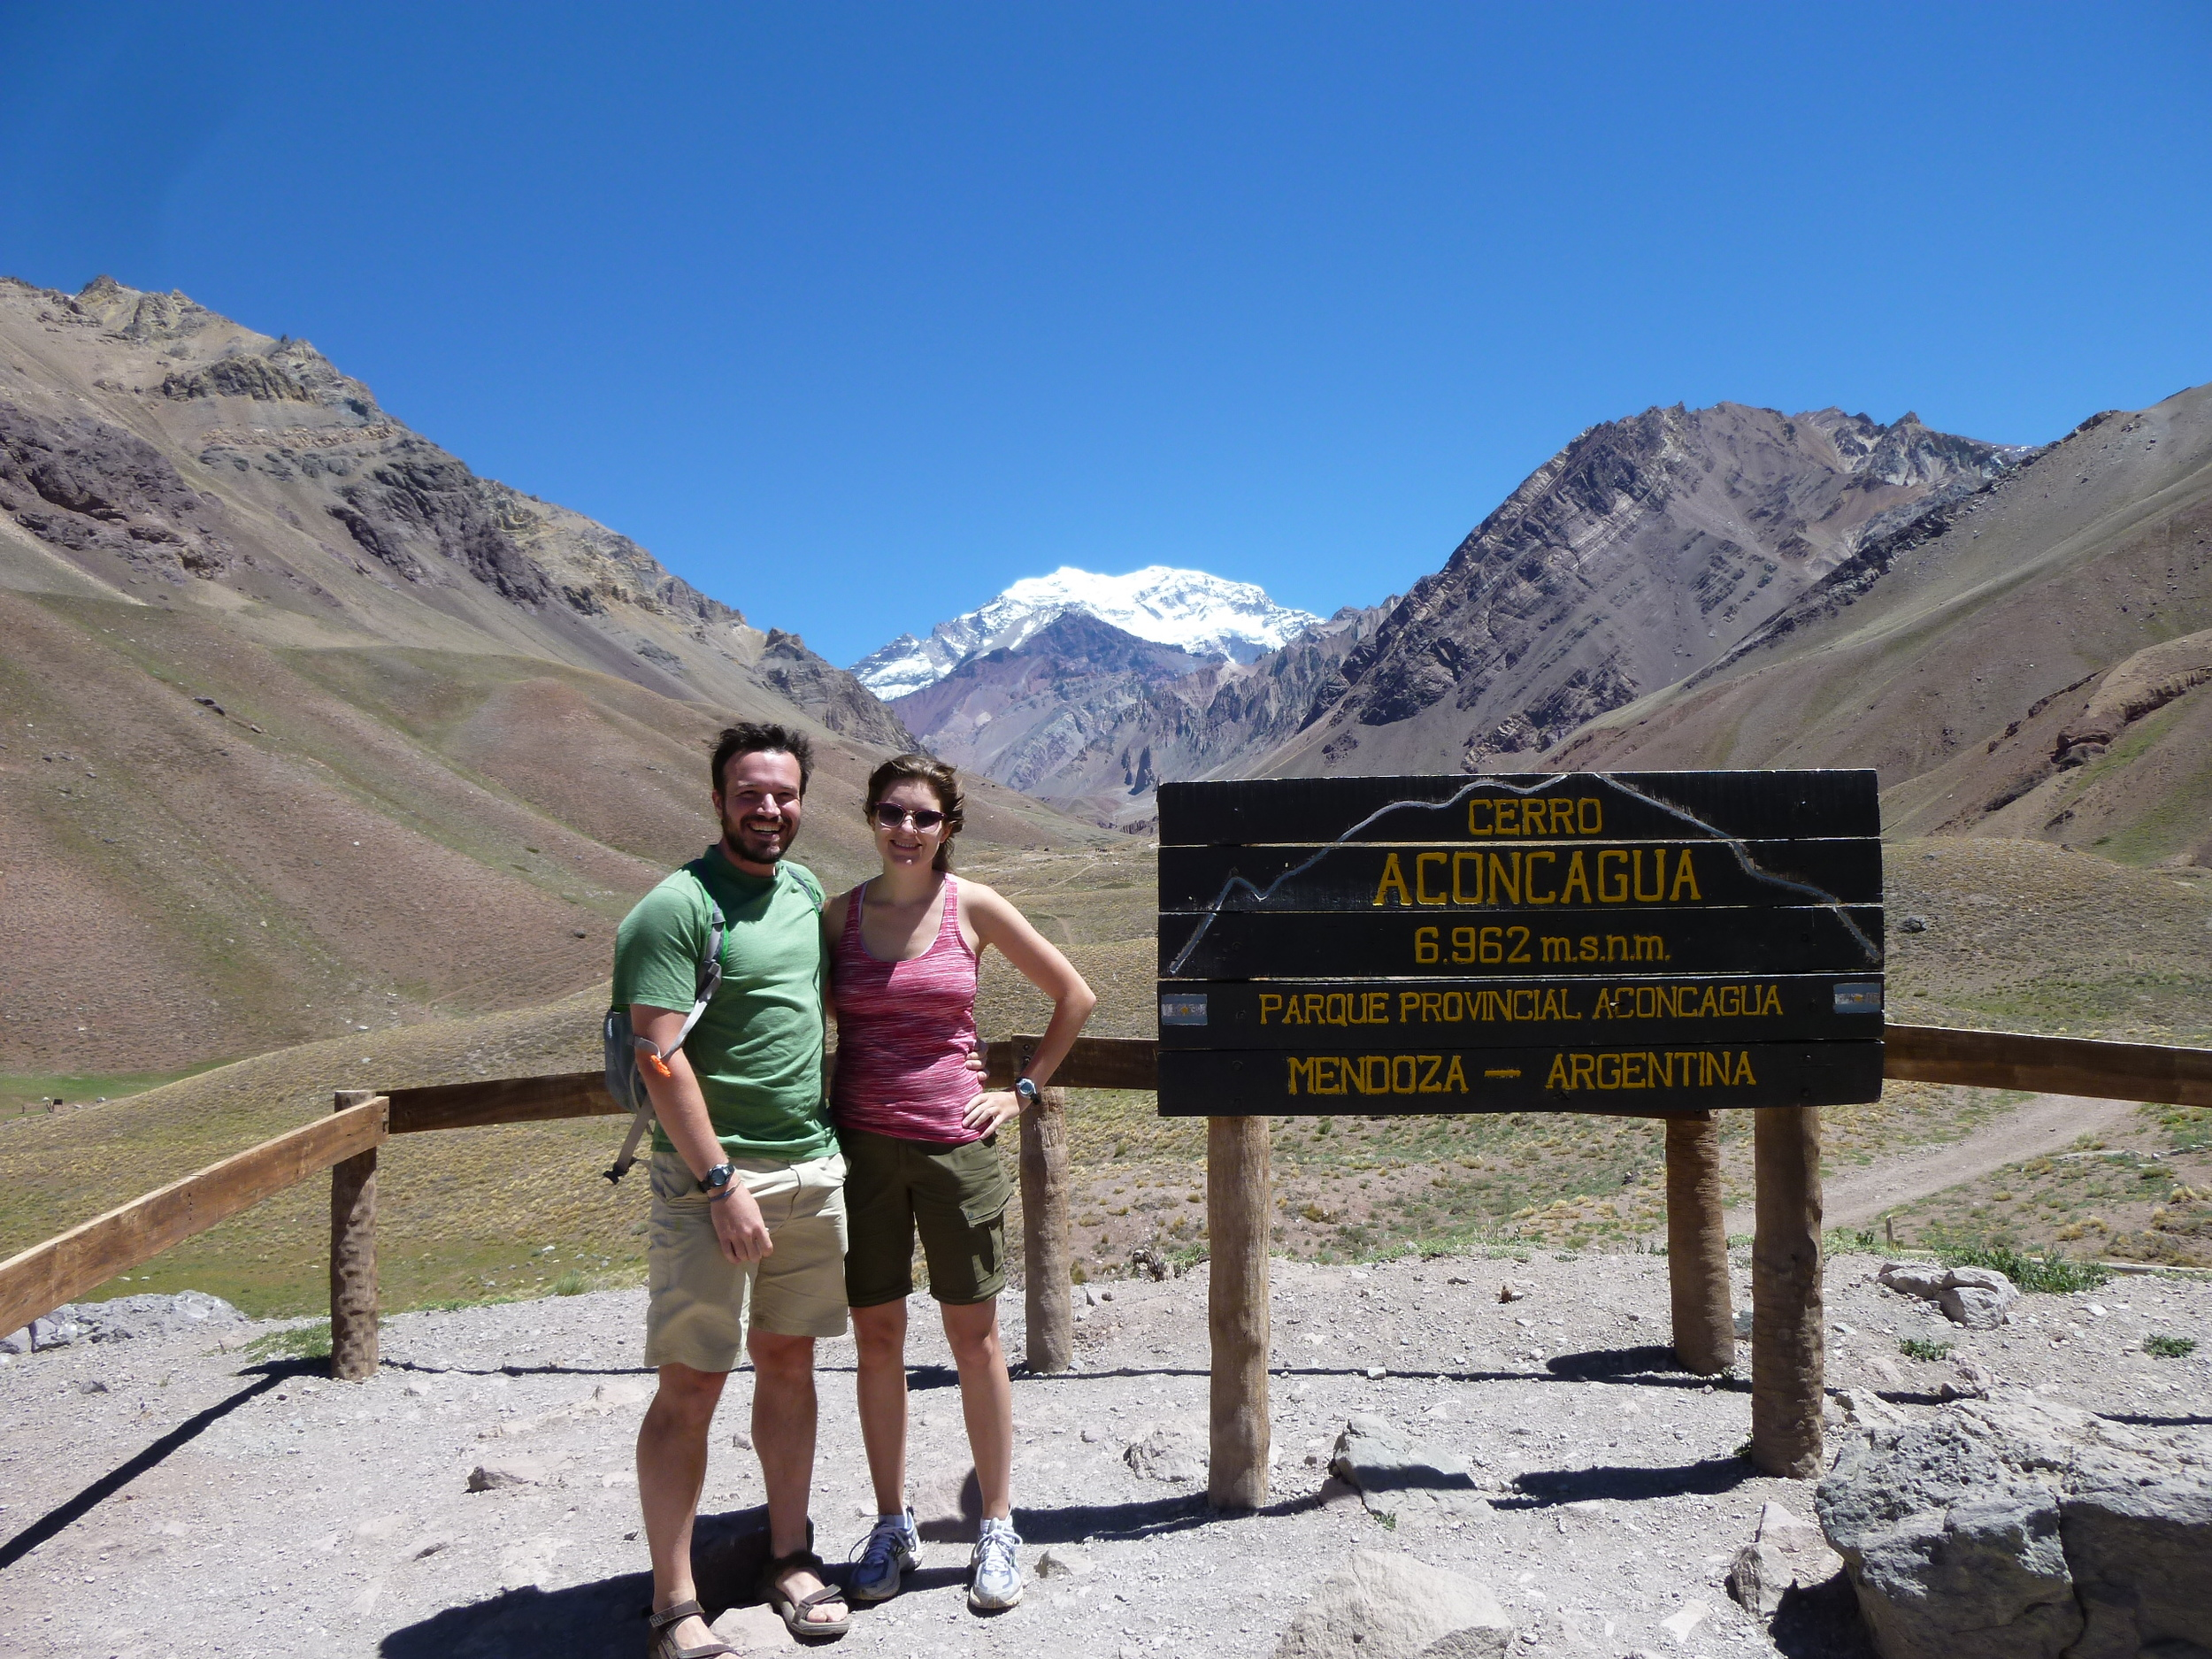 Aconcagua and Chris rockin' some Doc Brown hair thanks to the Andeanwinds...